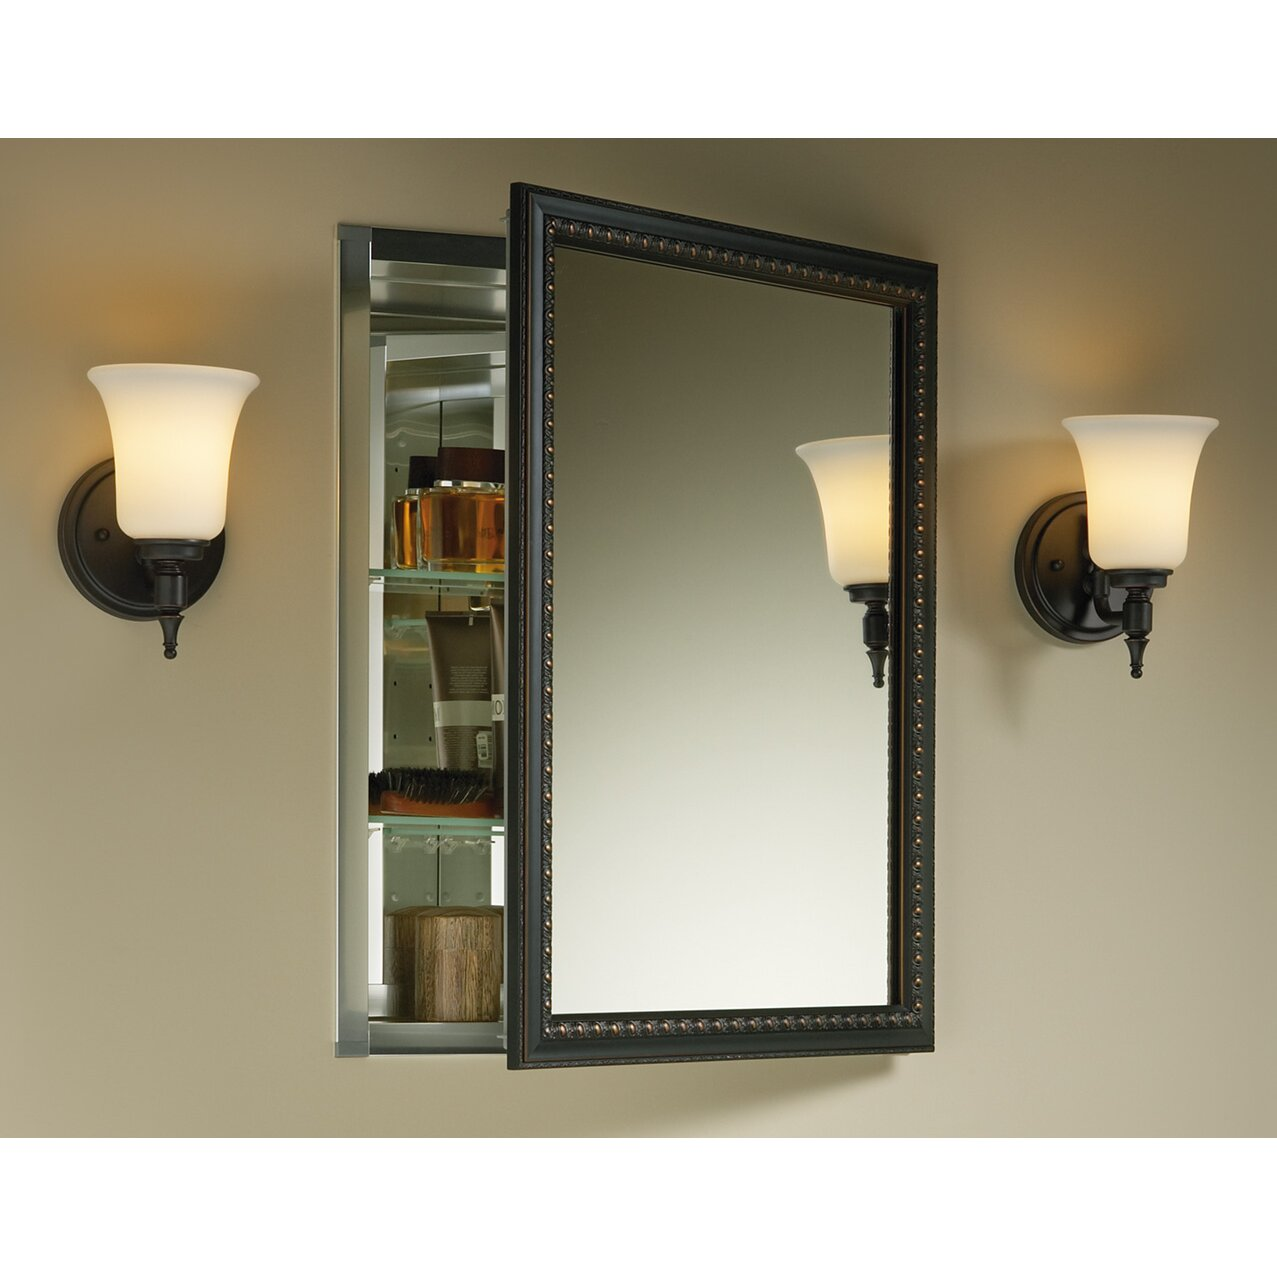 "Mounting Cabinet Doors To A Wall For An Accent Wall: Kohler 20"" X 26"" Wall Mount Mirrored Medicine Cabinet With"